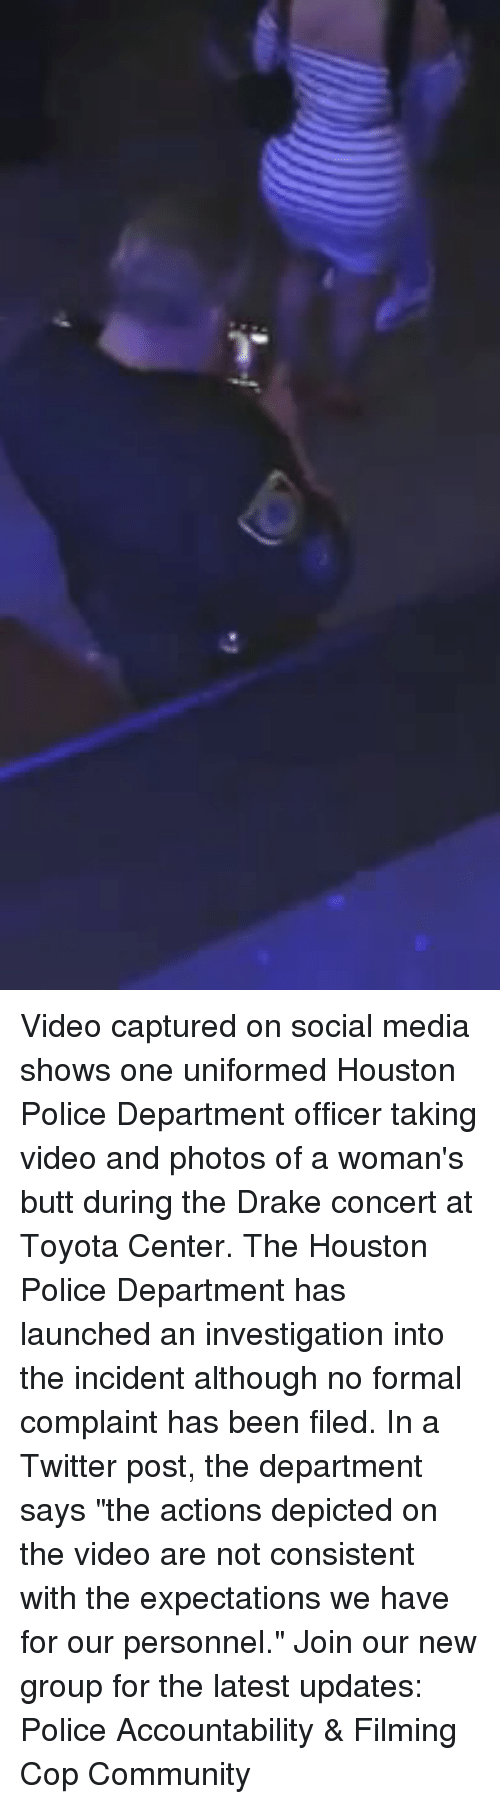 """Butt, Community, and Drake: Video captured on social media shows one uniformed Houston Police Department officer taking video and photos of a woman's butt during the Drake concert at Toyota Center. The Houston Police Department has launched an investigation into the incident although no formal complaint has been filed. In a Twitter post, the department says """"the actions depicted on the video are not consistent with the expectations we have for our personnel."""" Join our new group for the latest updates: Police Accountability & Filming Cop Community"""